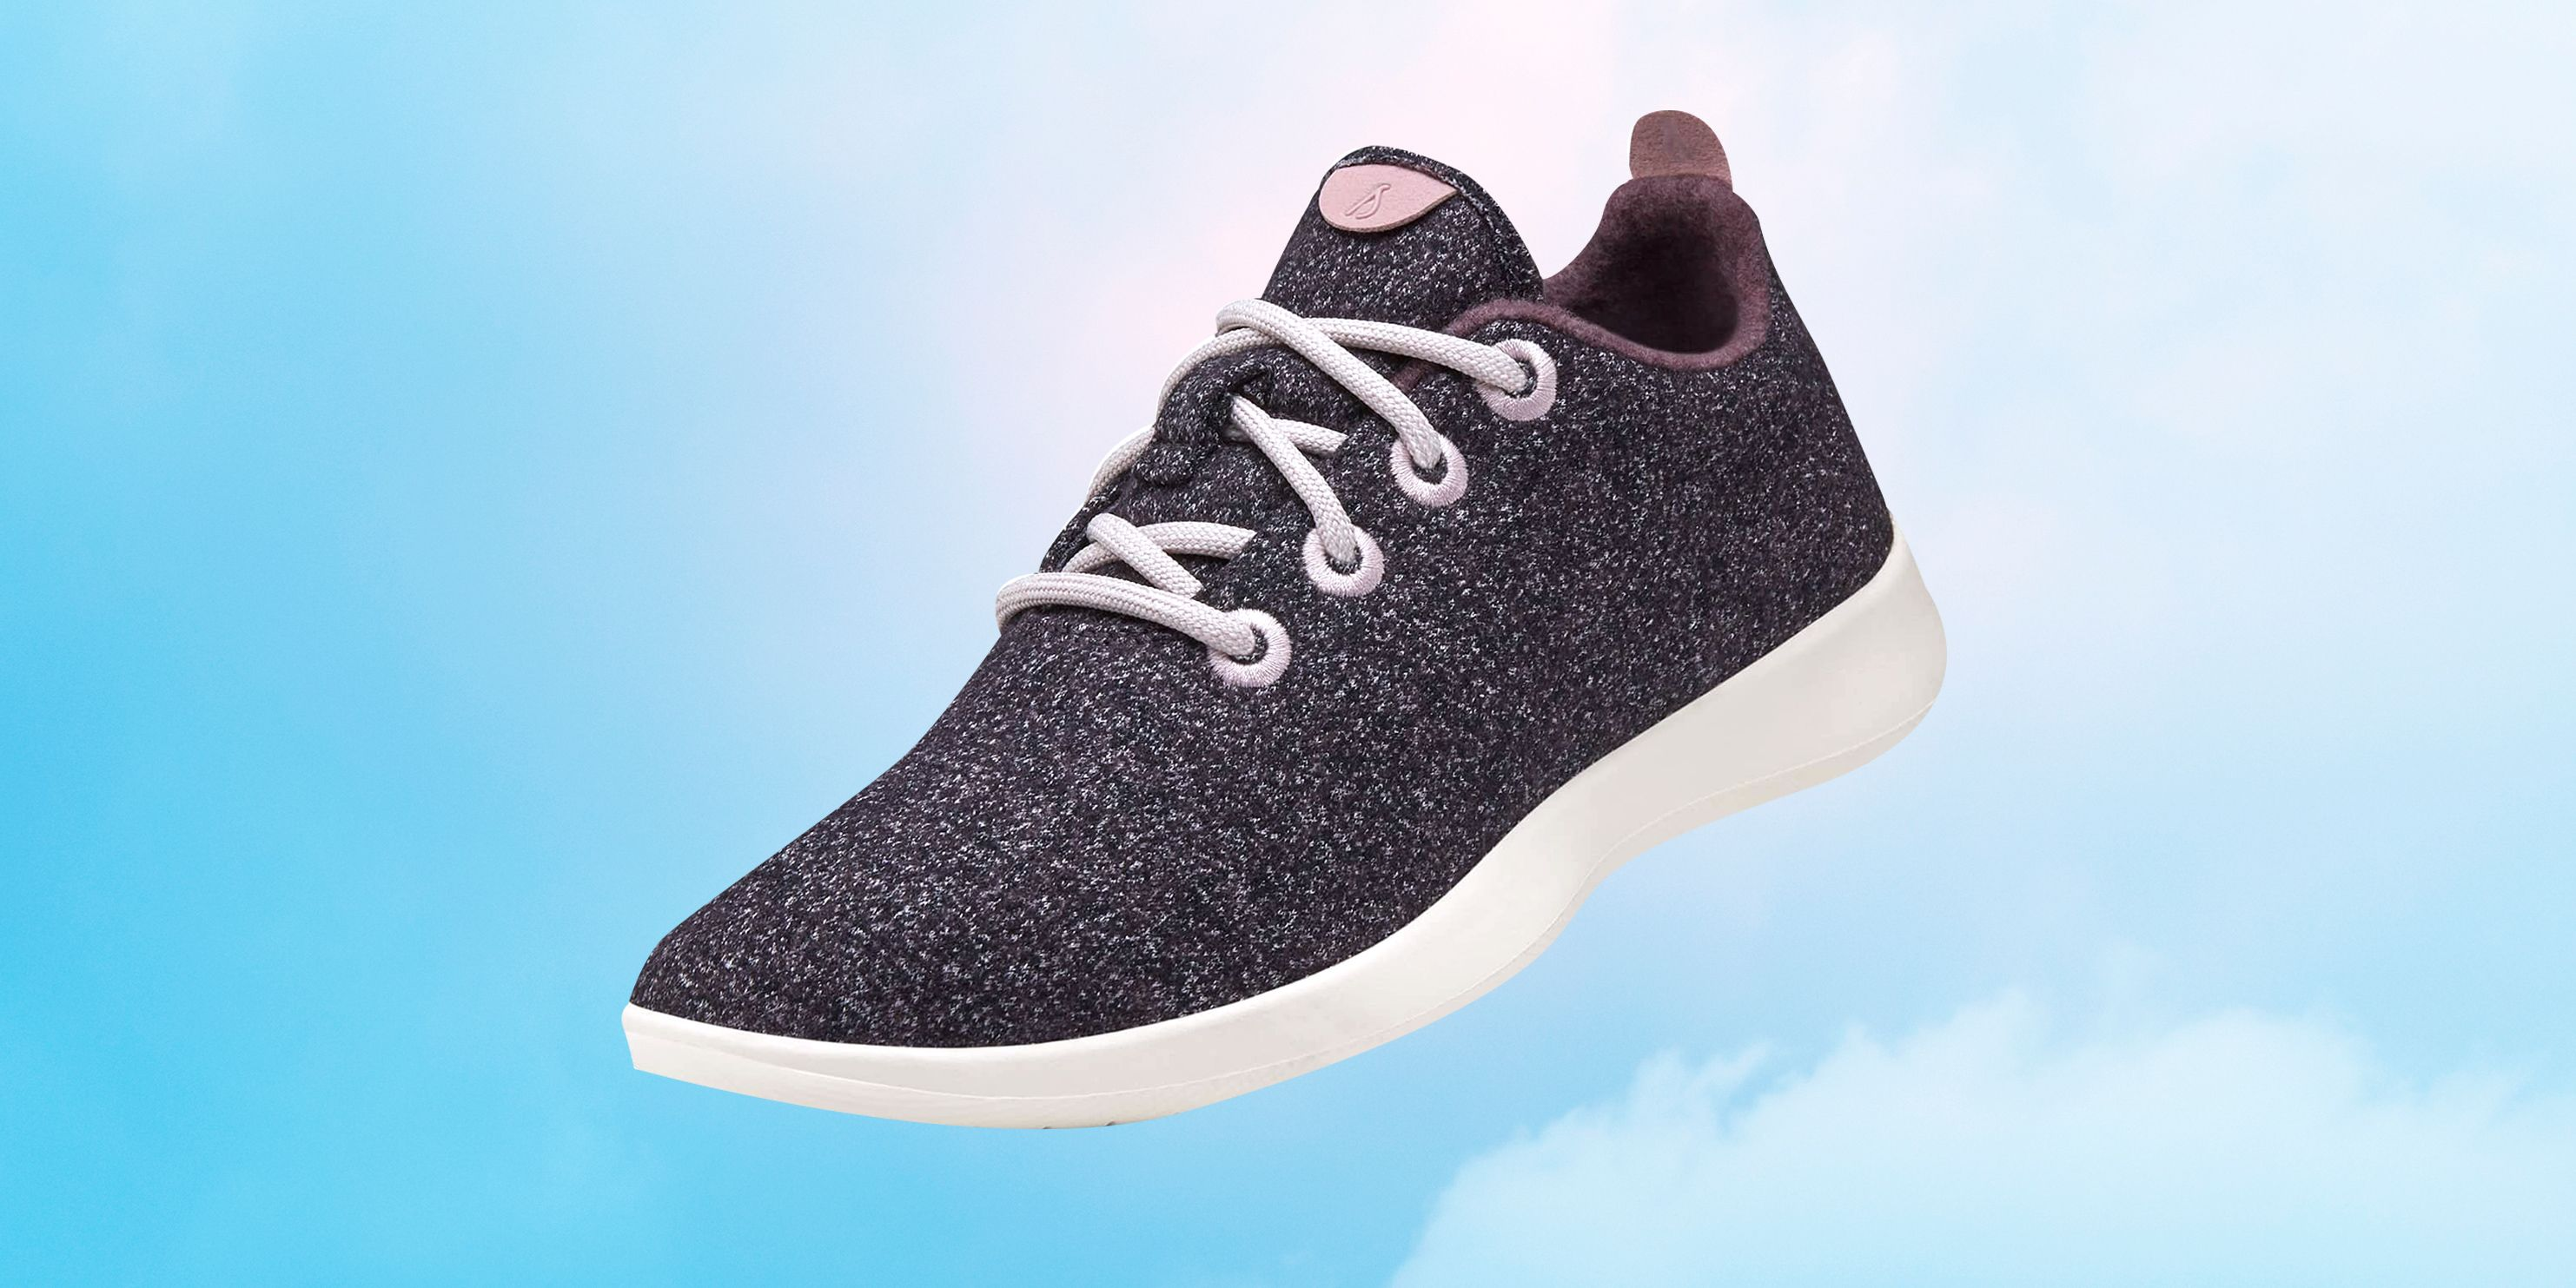 57119833deb Allbirds Review  Are These Wool Shoes Worth It